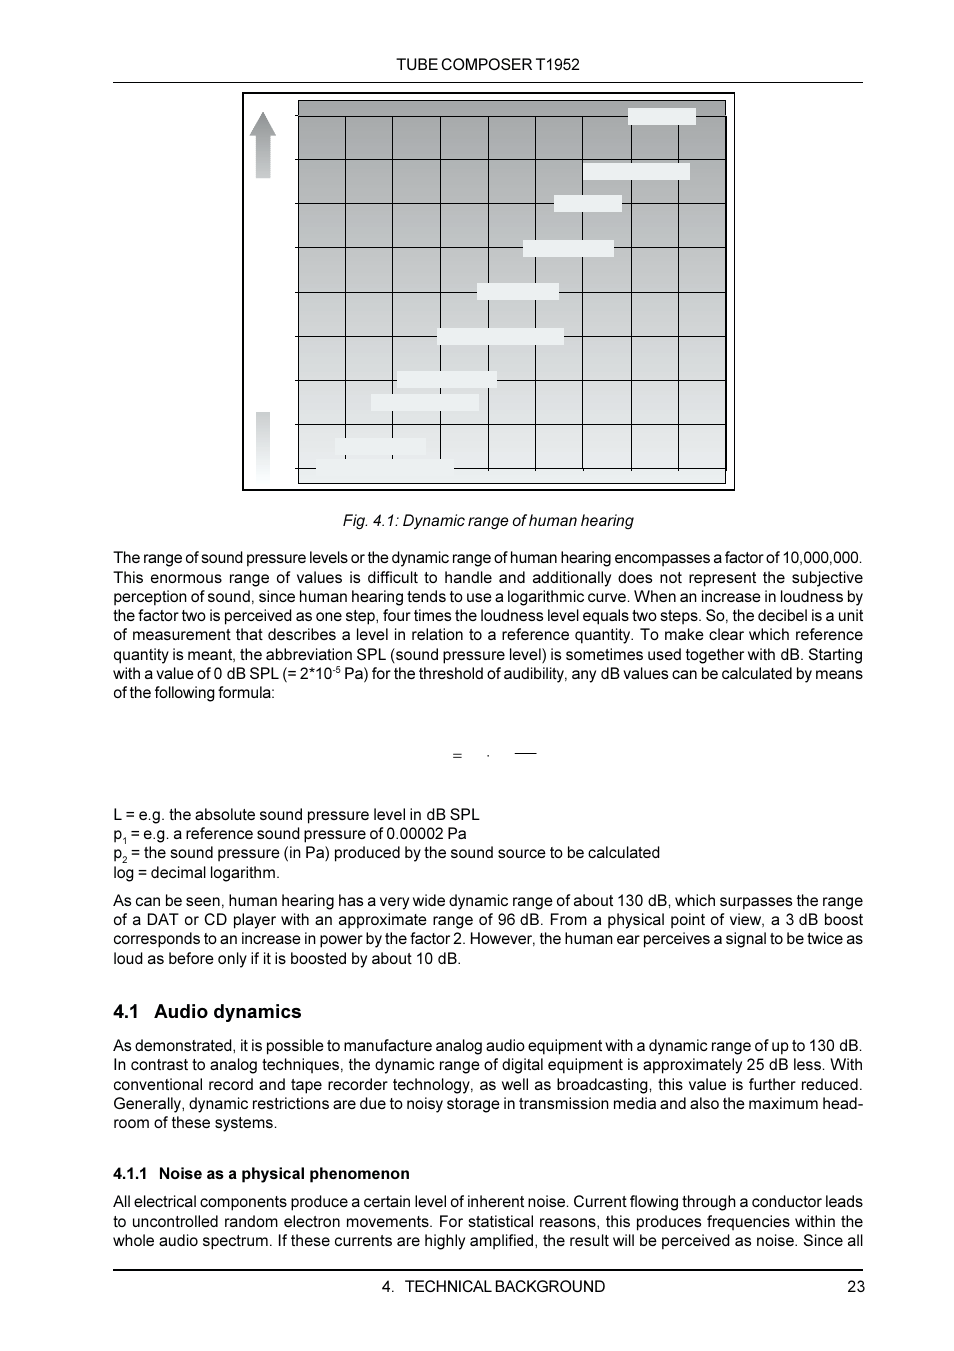 1 audio dynamics | Behringer T1952 User Manual | Page 23 / 34